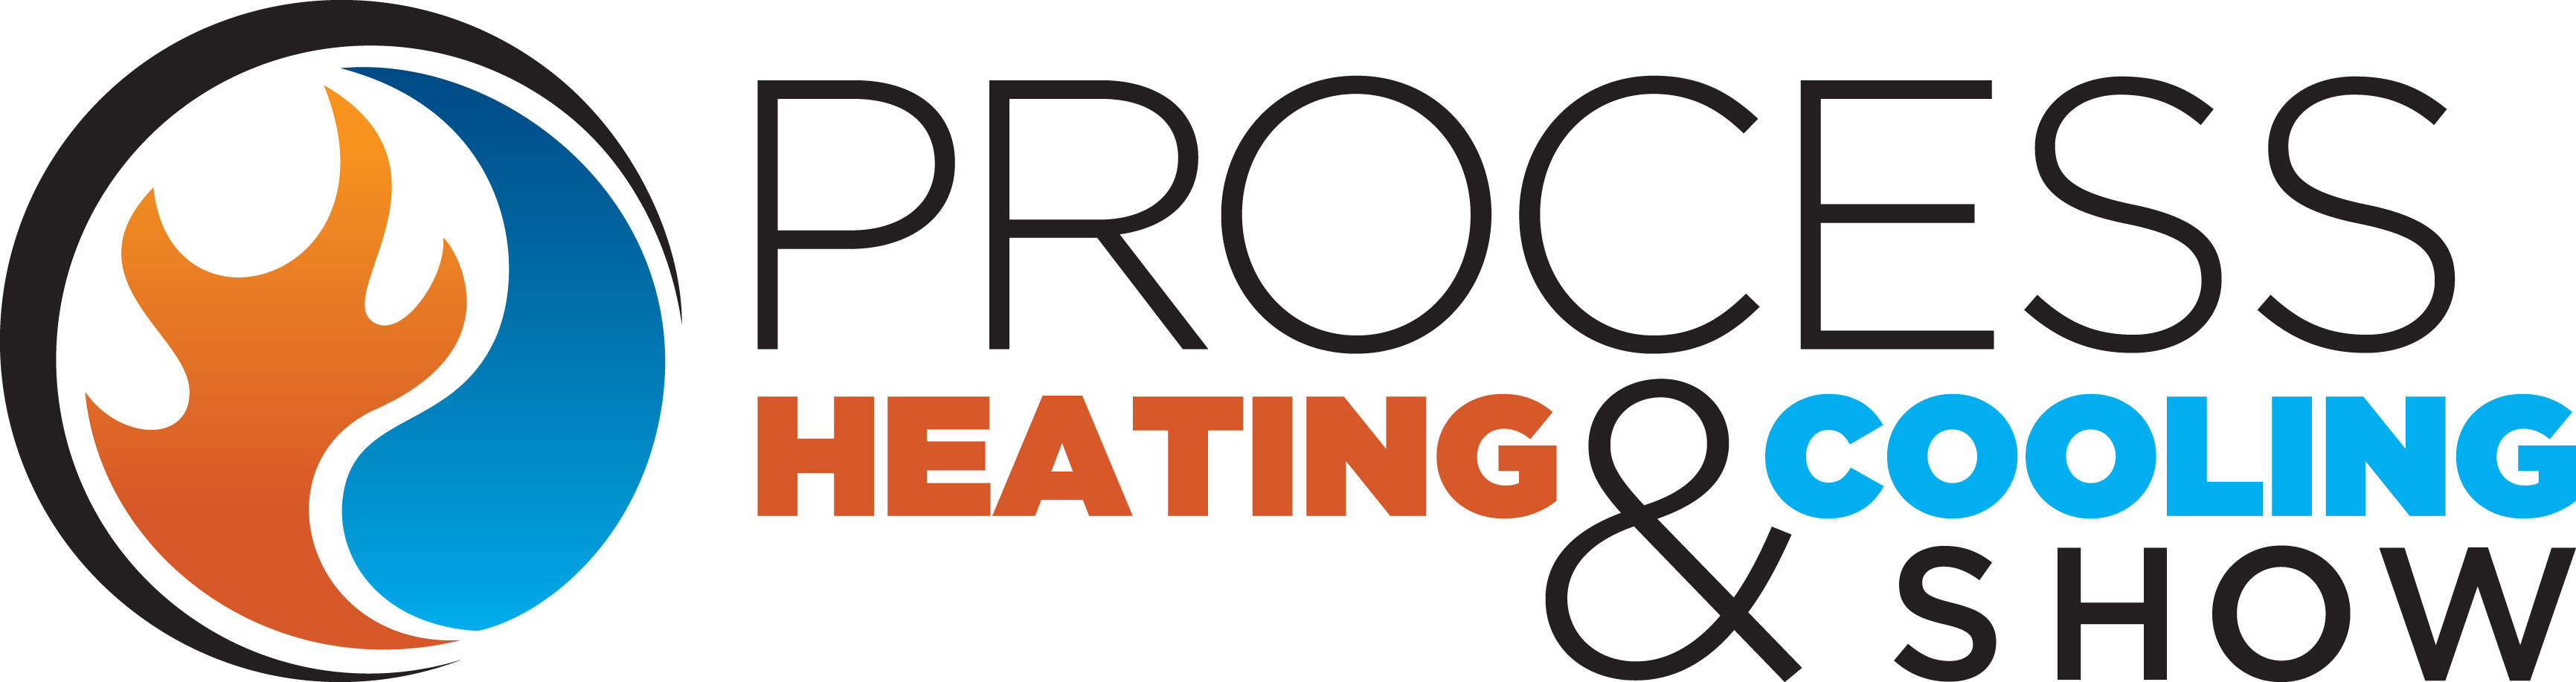 Process Heating & Cooling Show logo